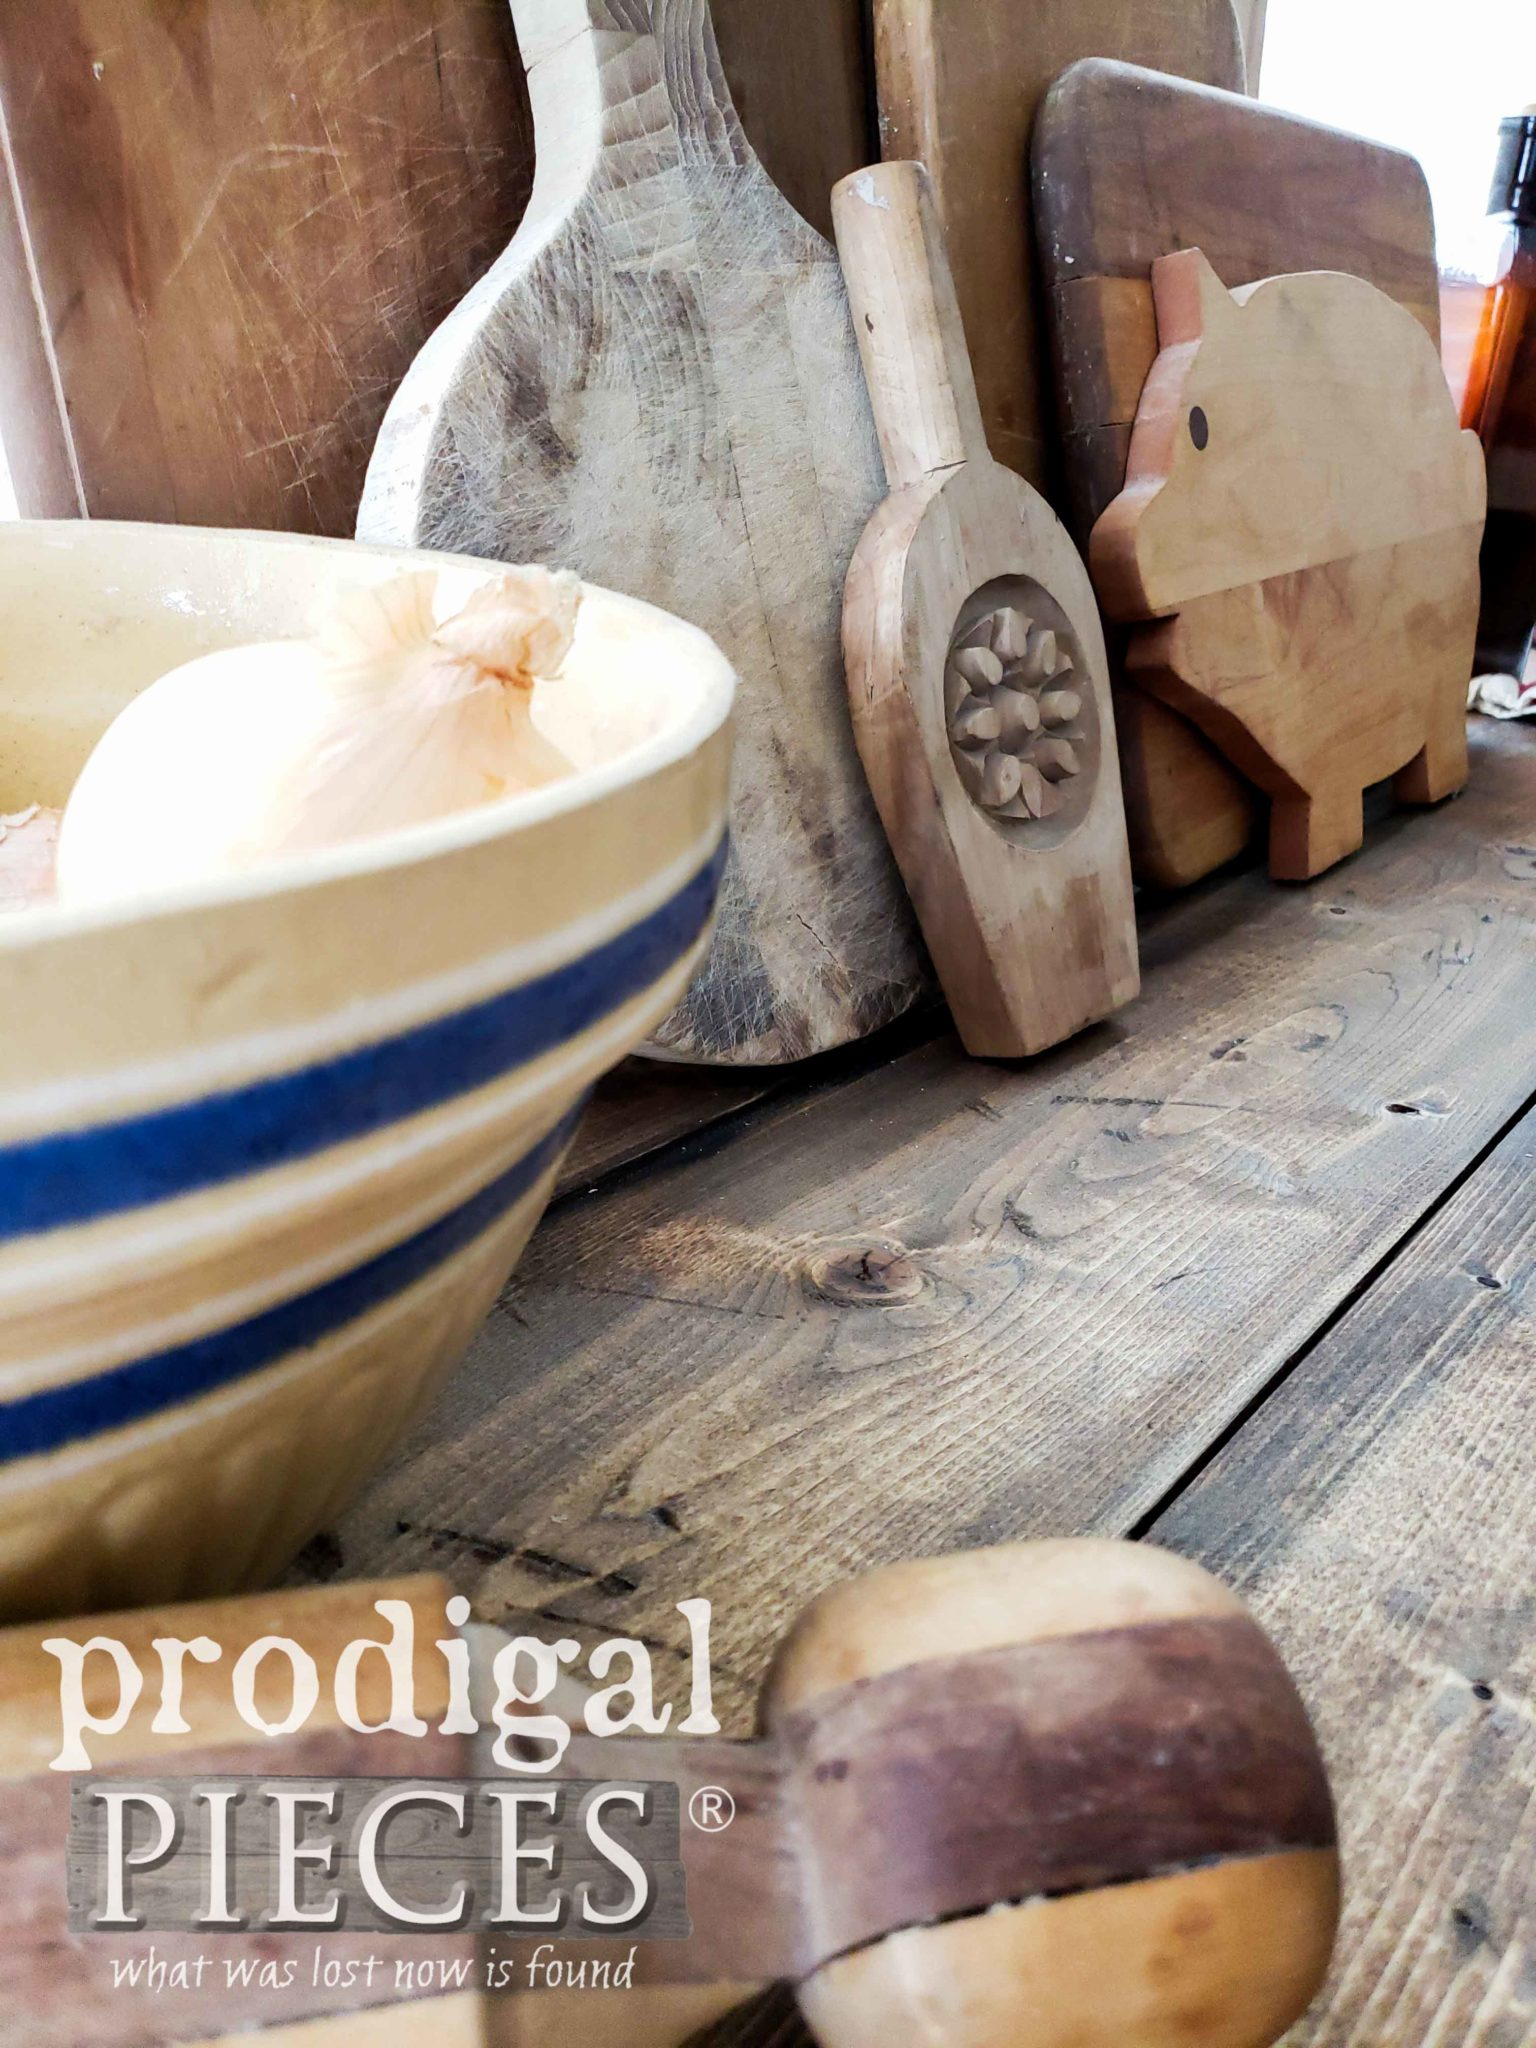 Antique Cutting Boards and Yellow Ware in Farmhouse Kitchen Vignette by Larissa of Prodigal Pieces | prodigalpieces.com